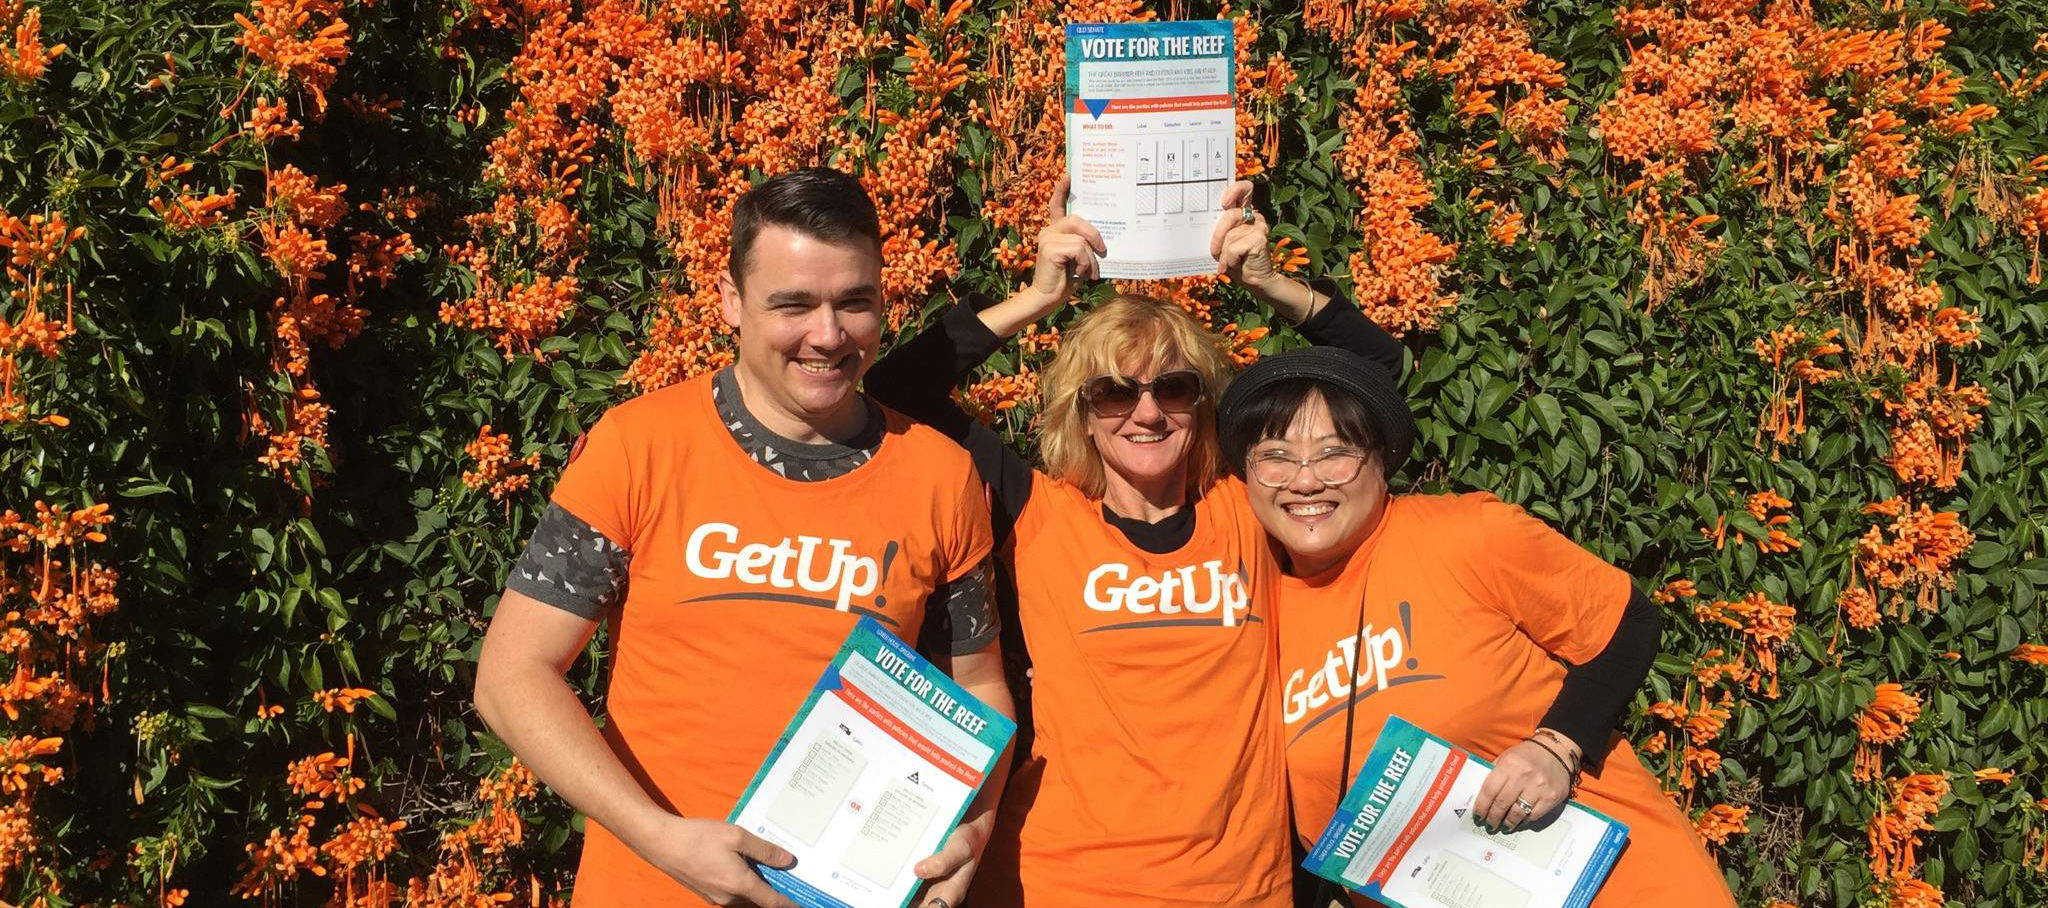 Welcome to the GetUp Action Hub!